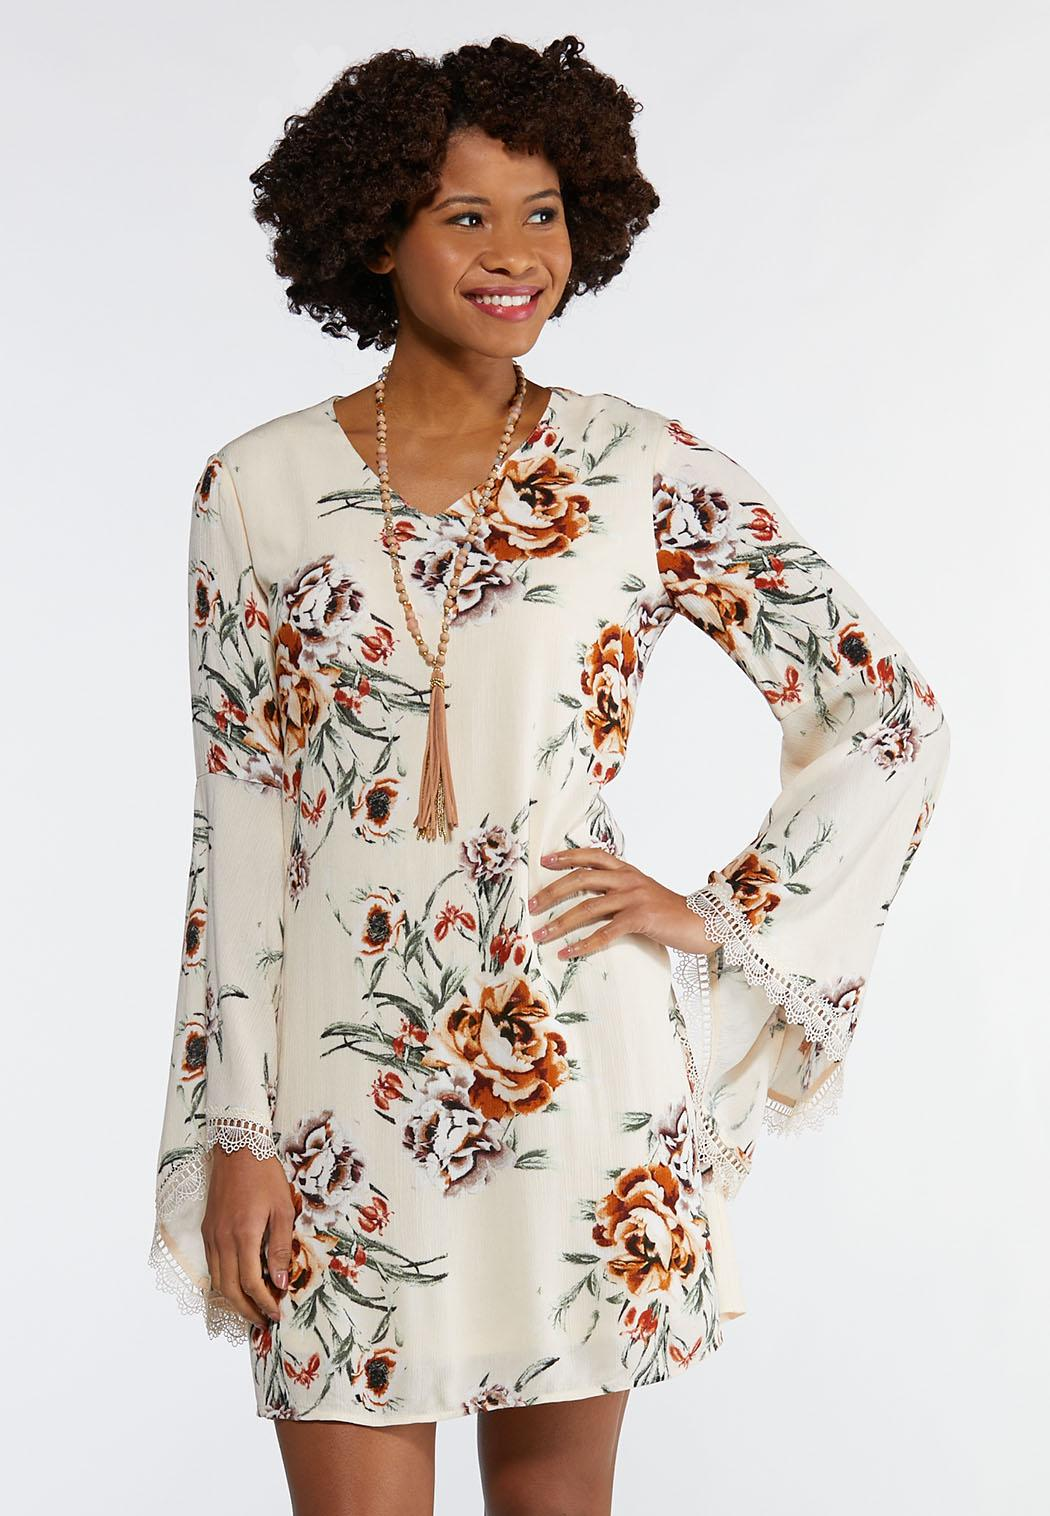 Plus Size Ivory Floral Swing Dress A-line & Swing Cato Fashions